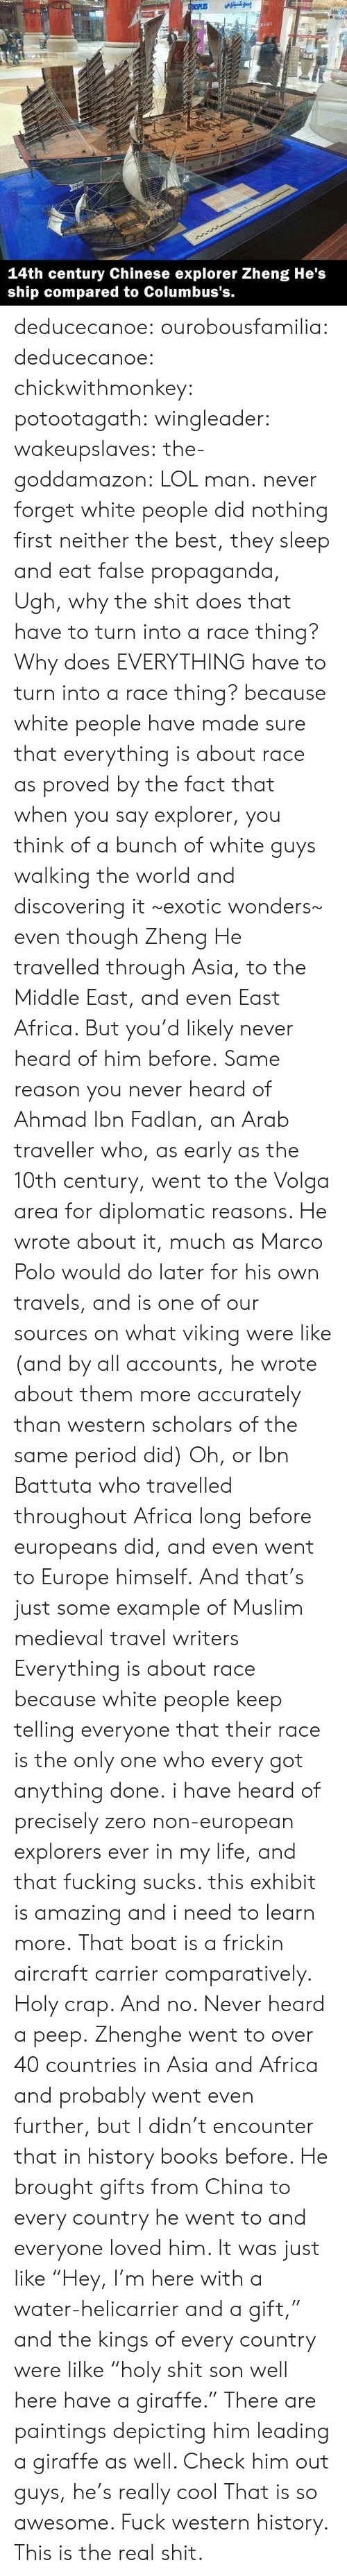 "Muslim: بوكسيلوس  SPLUS  Ma  A  83INT  14th century Chinese explorer Zheng He's  ship compared to Columbus's. deducecanoe: ourobousfamilia:  deducecanoe:  chickwithmonkey:  potootagath:  wingleader:  wakeupslaves:  the-goddamazon:  LOL man.  never forget white people did nothing first neither the best, they sleep and eat false propaganda,  Ugh, why the shit does that have to turn into a race thing? Why does EVERYTHING have to turn into a race thing?  because white people have made sure that everything is about race as proved by the fact that when you say explorer, you think of a bunch of white guys walking the world and discovering it ~exotic wonders~ even though Zheng He travelled through Asia, to the Middle East, and even East Africa. But you'd likely never heard of him before. Same reason you never heard of Ahmad Ibn Fadlan, an Arab traveller who, as early as the 10th century, went to the Volga area for diplomatic reasons. He wrote about it, much as Marco Polo would do later for his own travels, and is one of our sources on what viking were like (and by all accounts, he wrote about them more accurately than western scholars of the same period did) Oh, or Ibn Battuta who travelled throughout Africa long before europeans did, and even went to Europe himself. And that's just some example of Muslim medieval travel writers Everything is about race because white people keep telling everyone that their race is the only one who every got anything done.  i have heard of precisely zero non-european explorers ever in my life, and that fucking sucks. this exhibit is amazing and i need to learn more.  That boat is a frickin aircraft carrier comparatively. Holy crap. And no. Never heard a peep.  Zhenghe went to over 40 countries in Asia and Africa and probably went even further, but I didn't encounter that in history books before. He brought gifts from China to every country he went to and everyone loved him. It was just like ""Hey, I'm here with a water-helicarrier and a gift,"" and the kings of every country were lilke ""holy shit son well here have a giraffe."" There are paintings depicting him leading a giraffe as well. Check him out guys, he's really cool  That is so awesome. Fuck western history. This is the real shit."